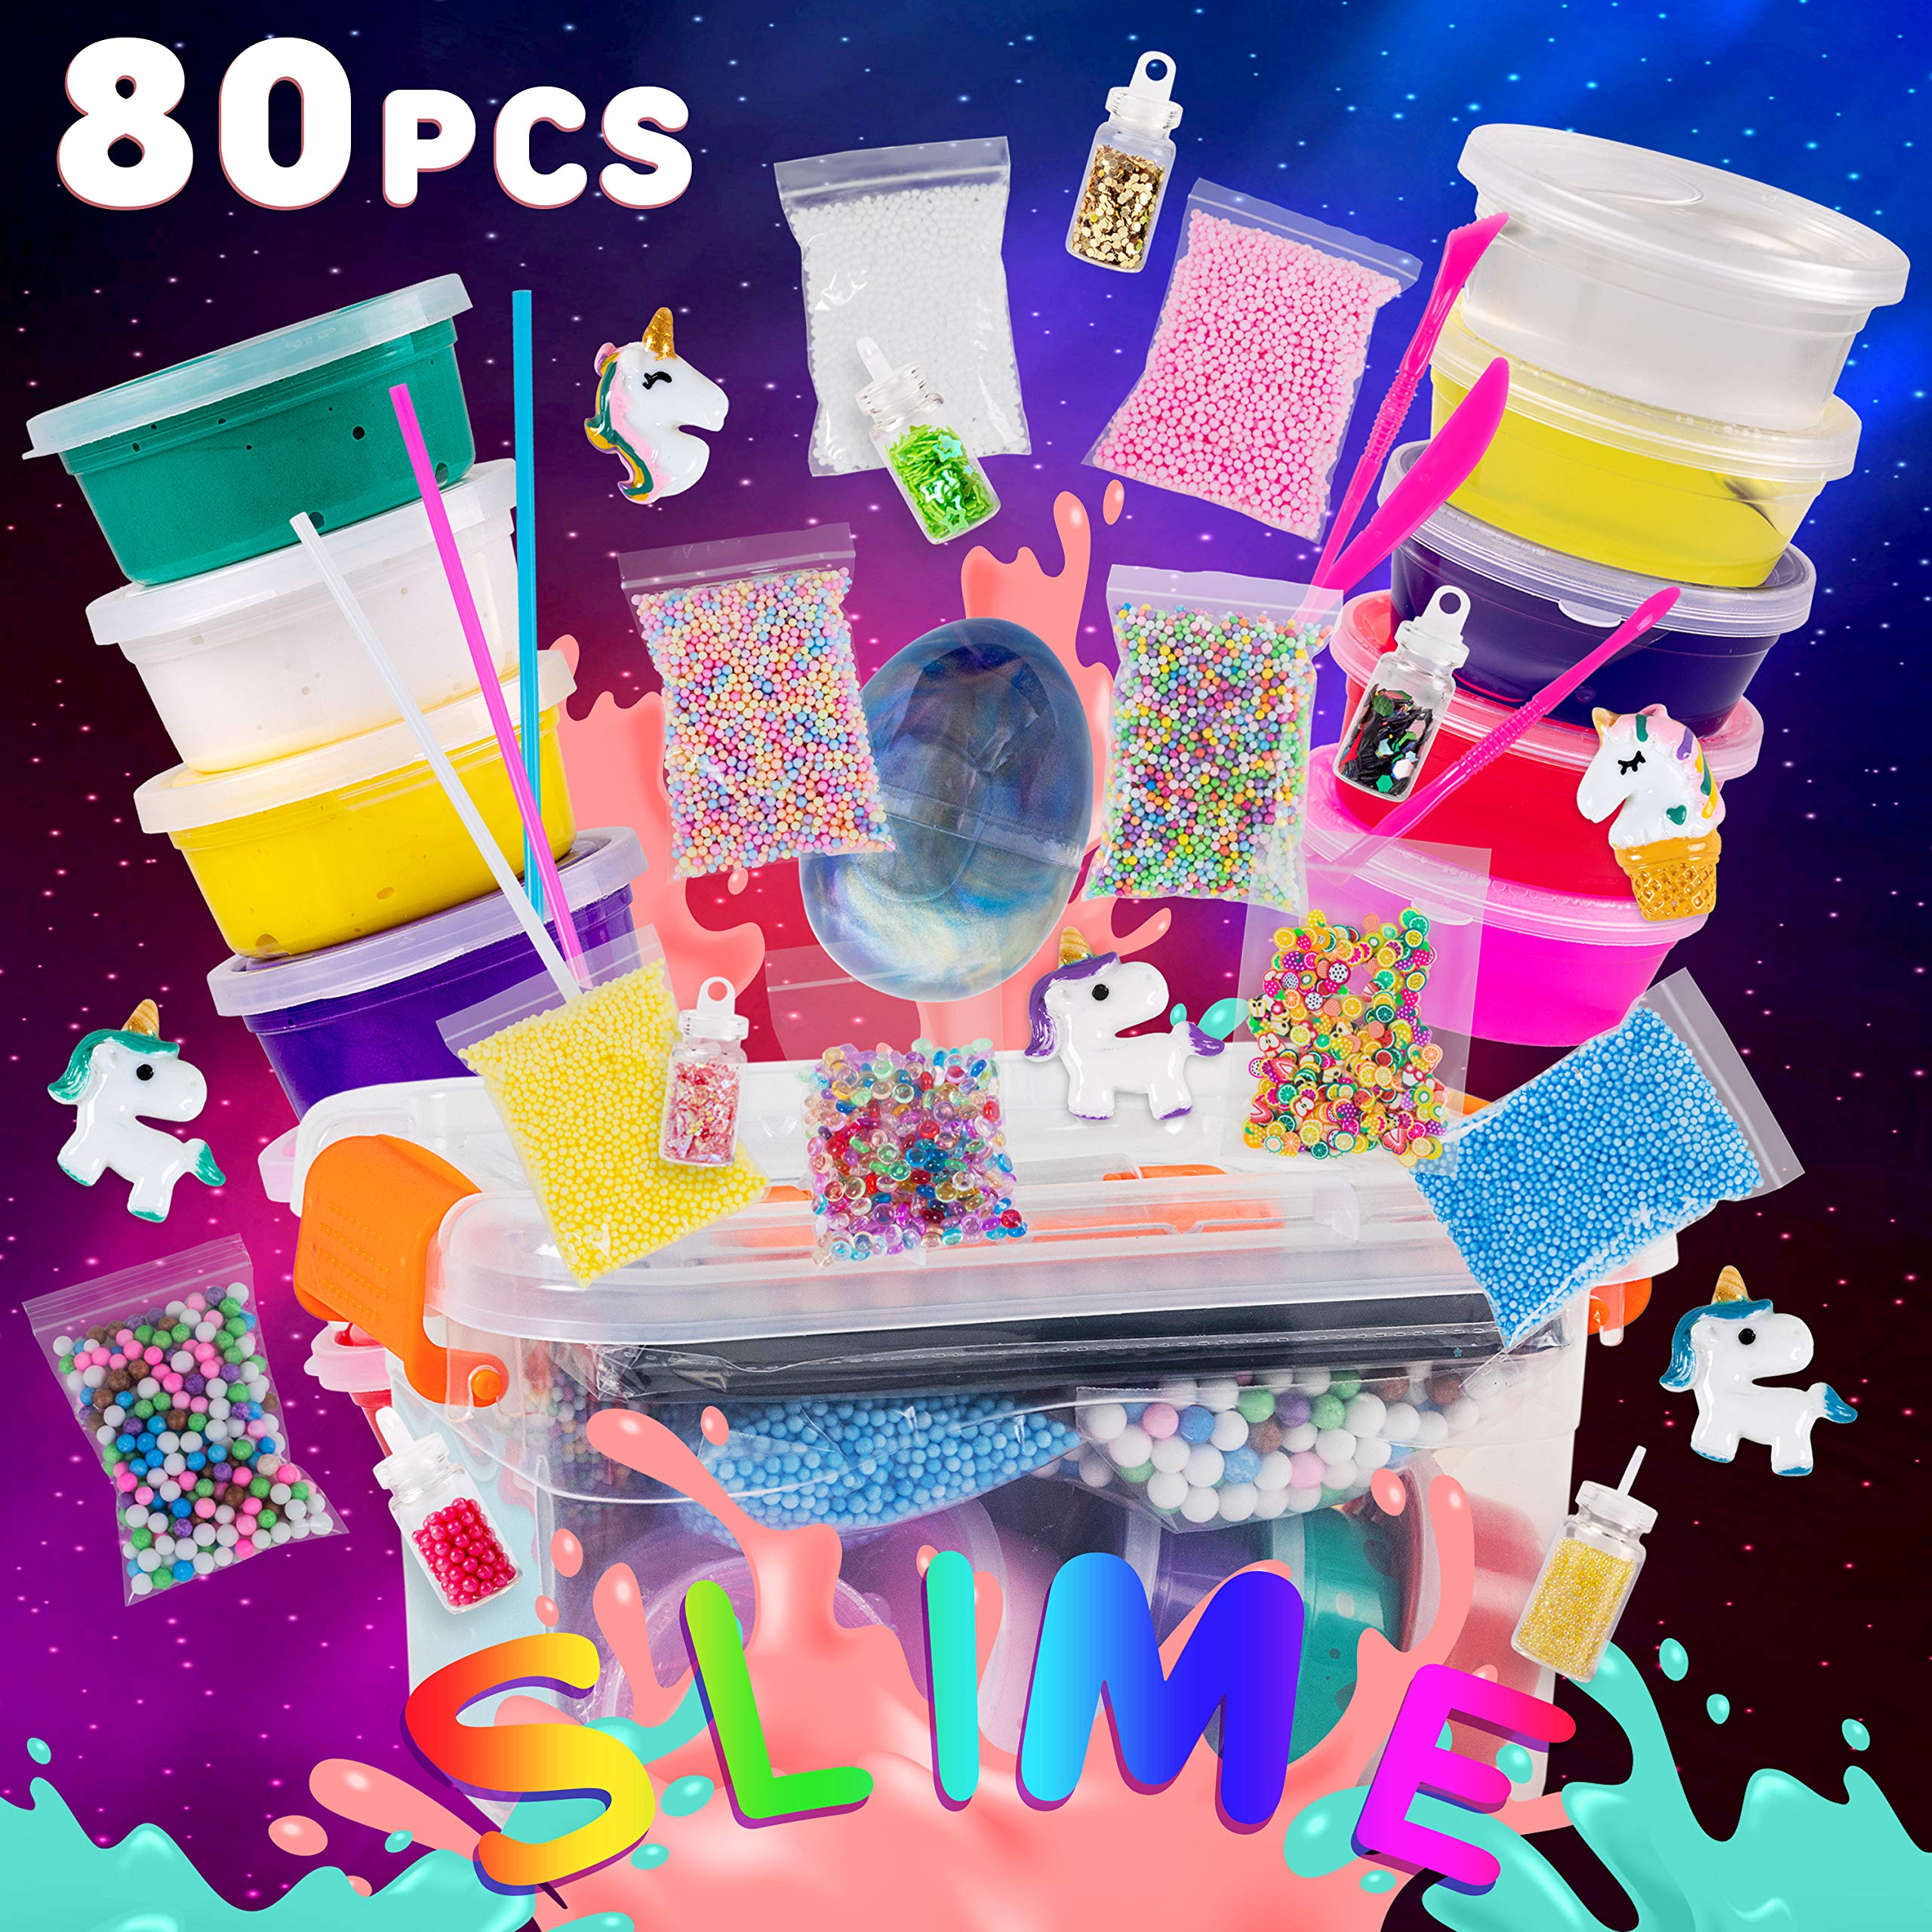 Slime Kit for Girls and Boys - 80 pcs Large DIY Set - Slime Making Kit Supplies - All in One Box with Unicorn Toys, Glitter, Slime Foam Beads - Perfect Birthday Toys Gift for 3-12 Year Age Old by JAMTOYS